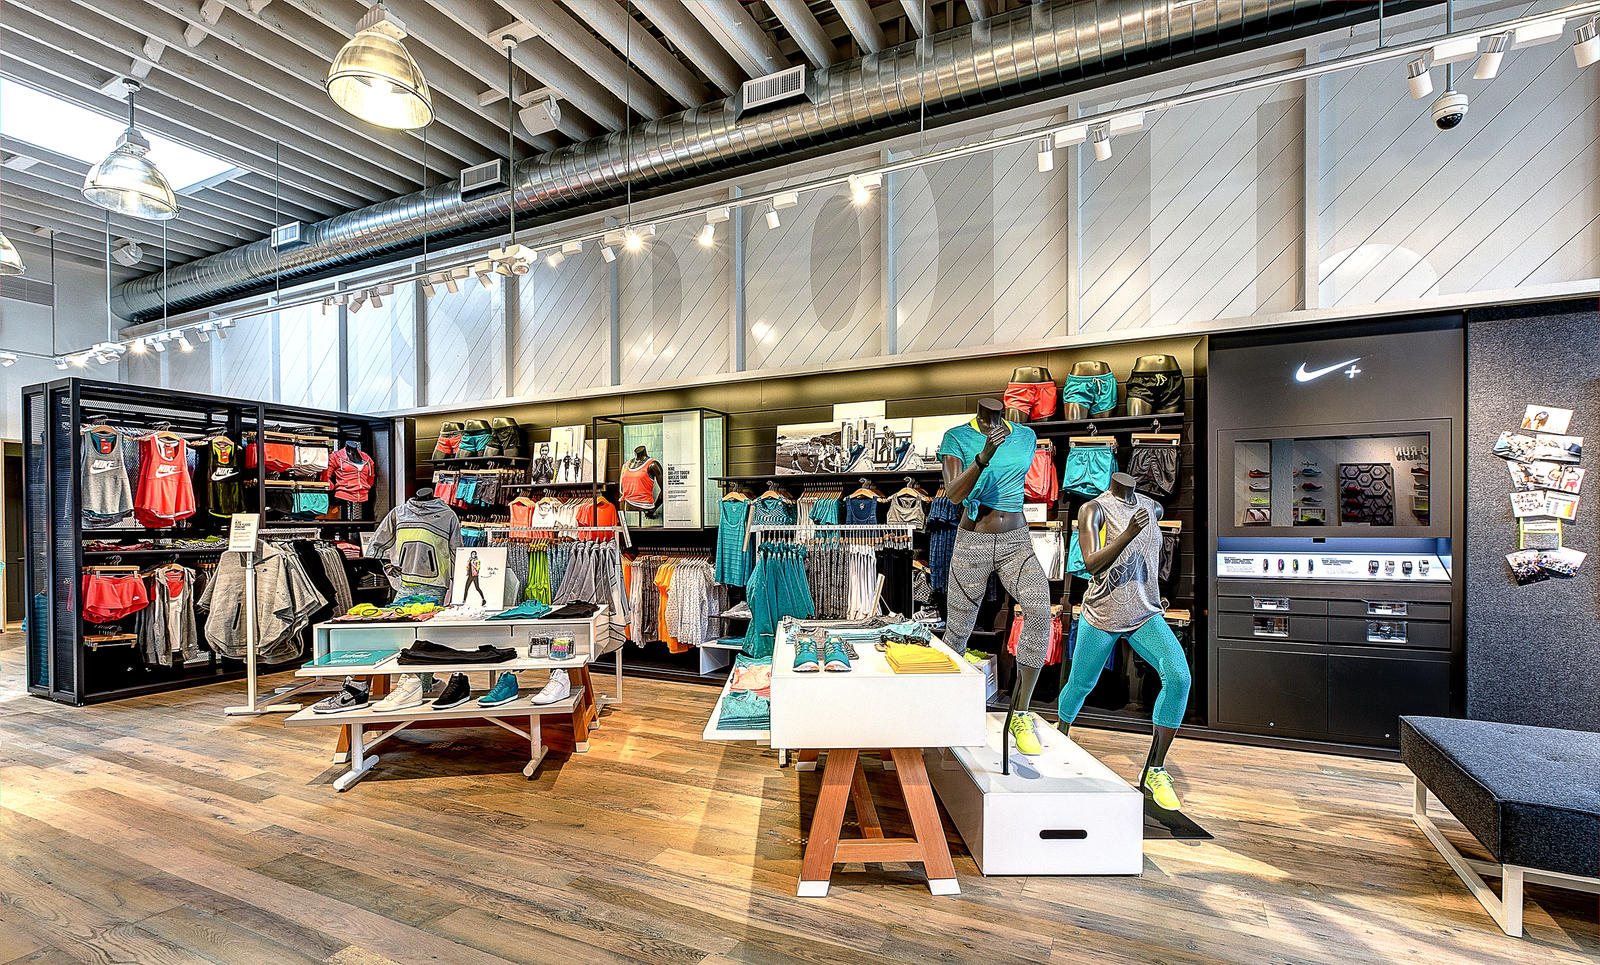 nike union street opens may 16 in san francisco nike news. Black Bedroom Furniture Sets. Home Design Ideas